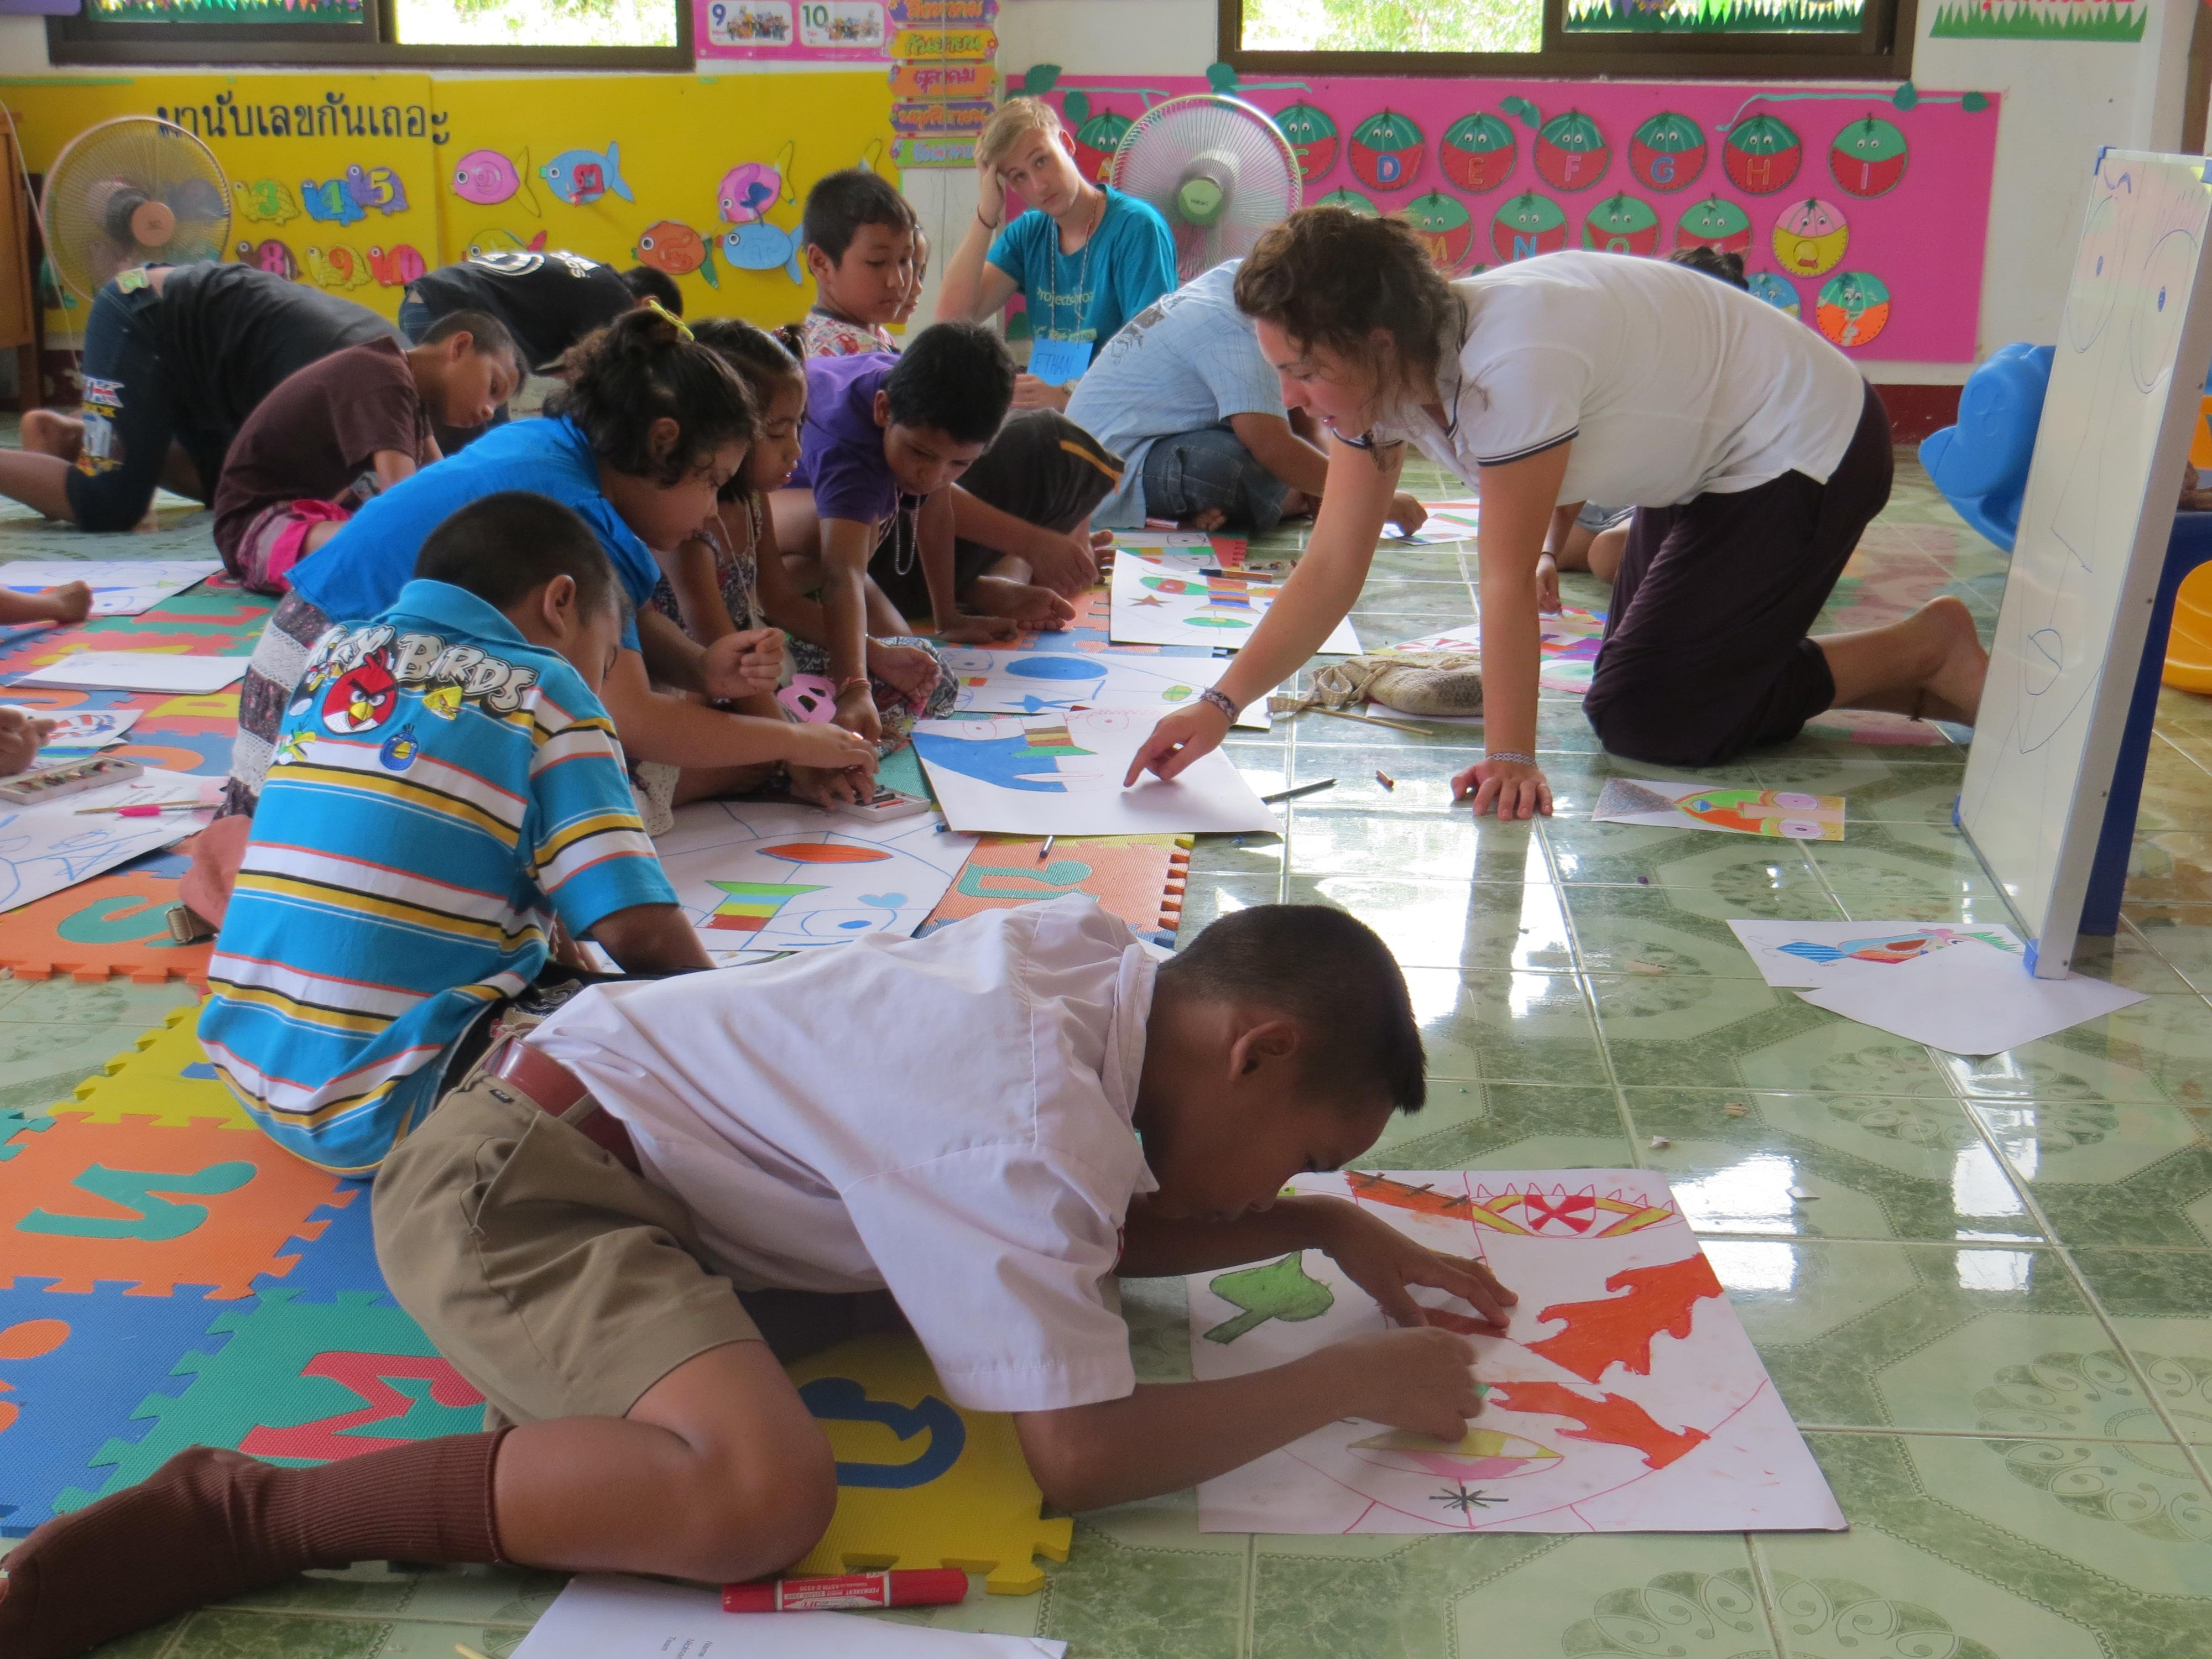 Students complete an art projects with a volunteer teaching English in Thailand.